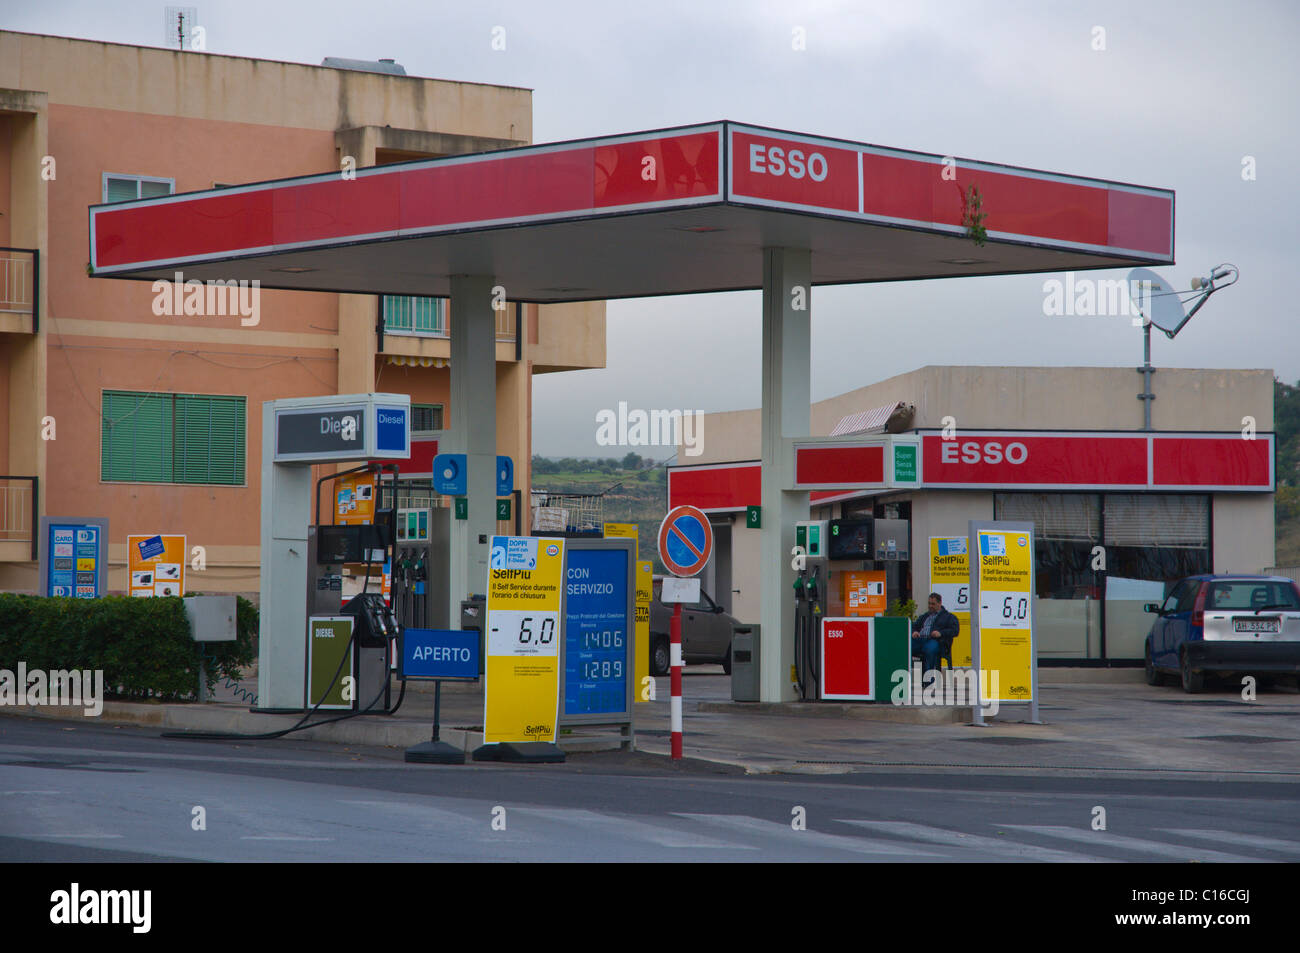 Esso Service Filling Gas Petrol Station Noto Sicily Italy Europe